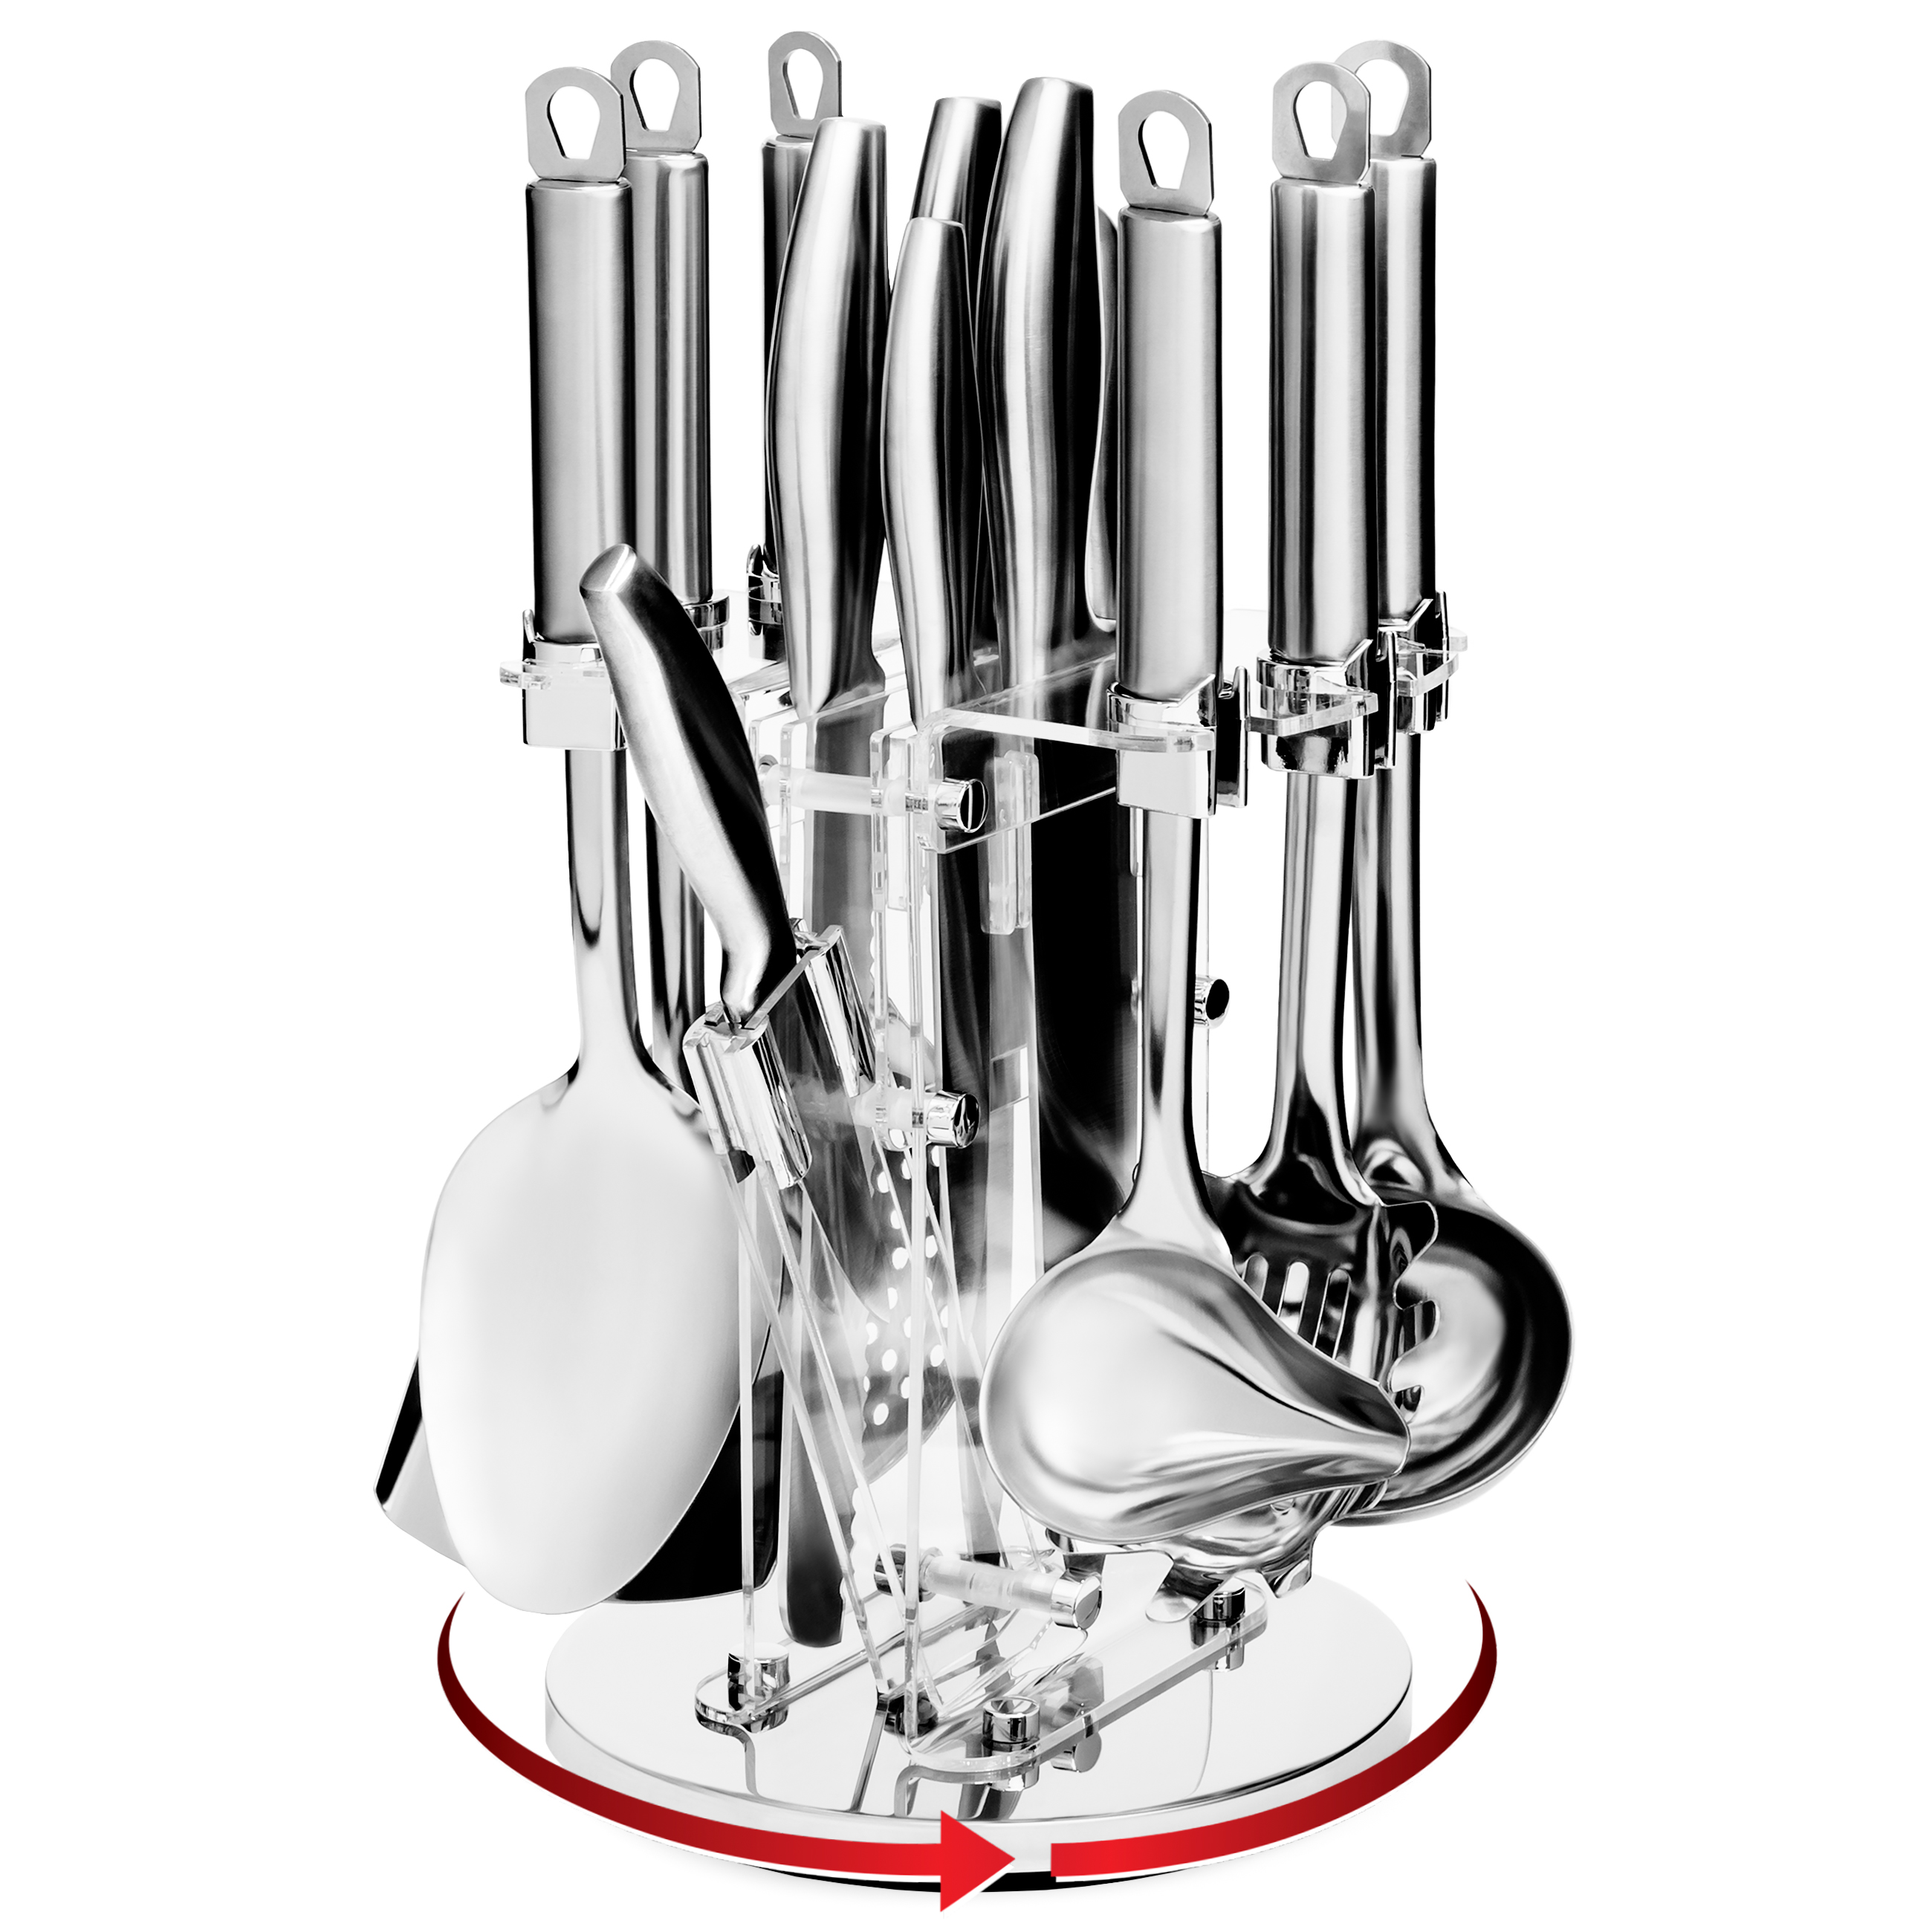 Best Choice Products 13-Piece Stainless Steel Kitchen Cooking Utensils w/ Knife Set and Rotating Display Stand - Silver